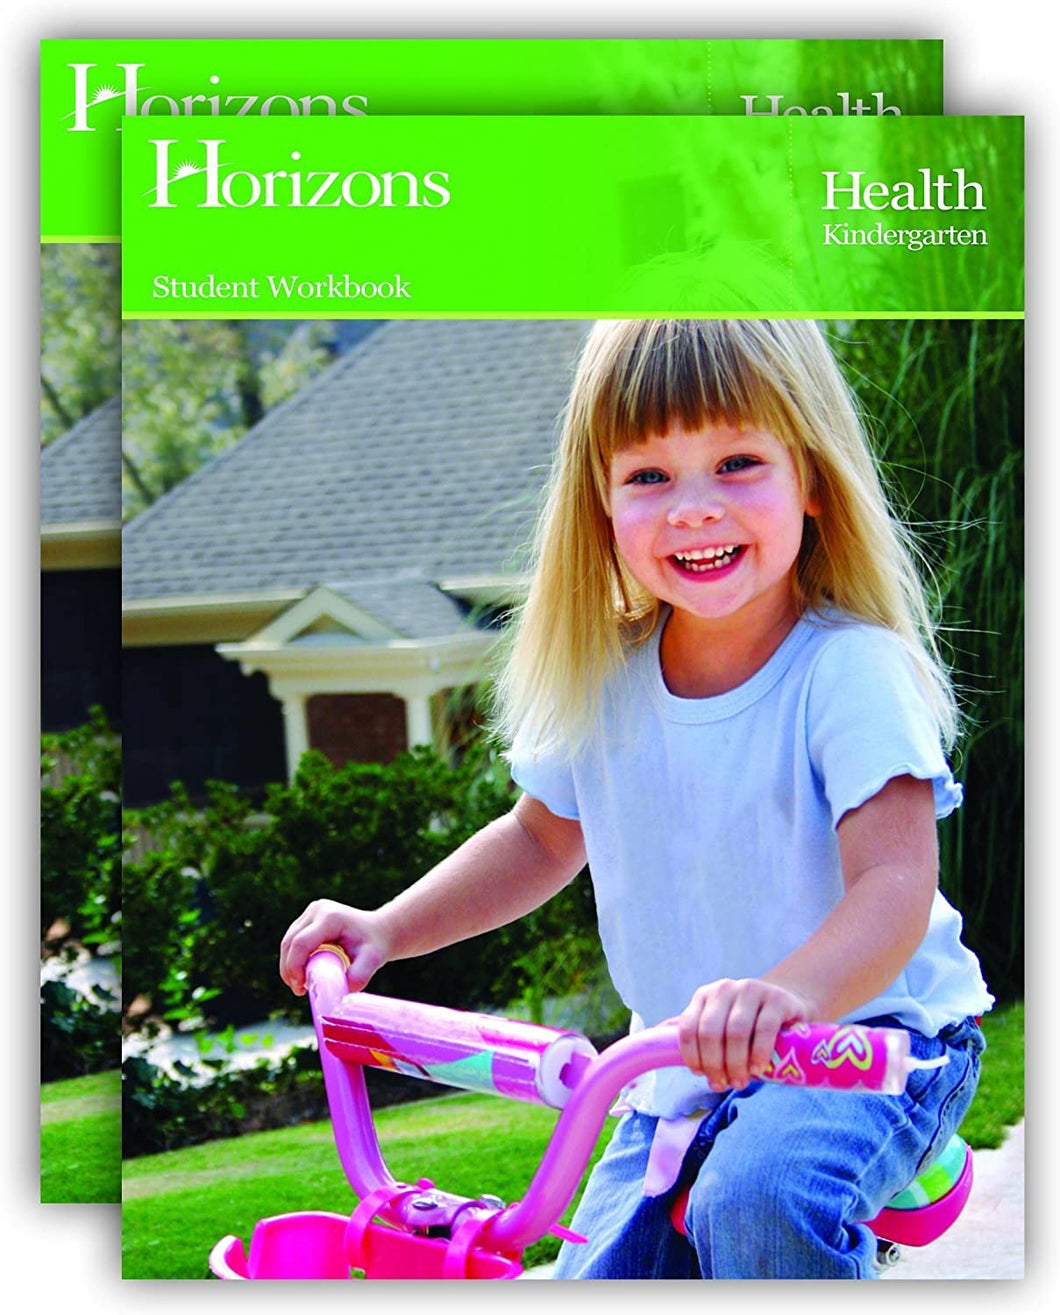 Horizons Health Kindergarten Set